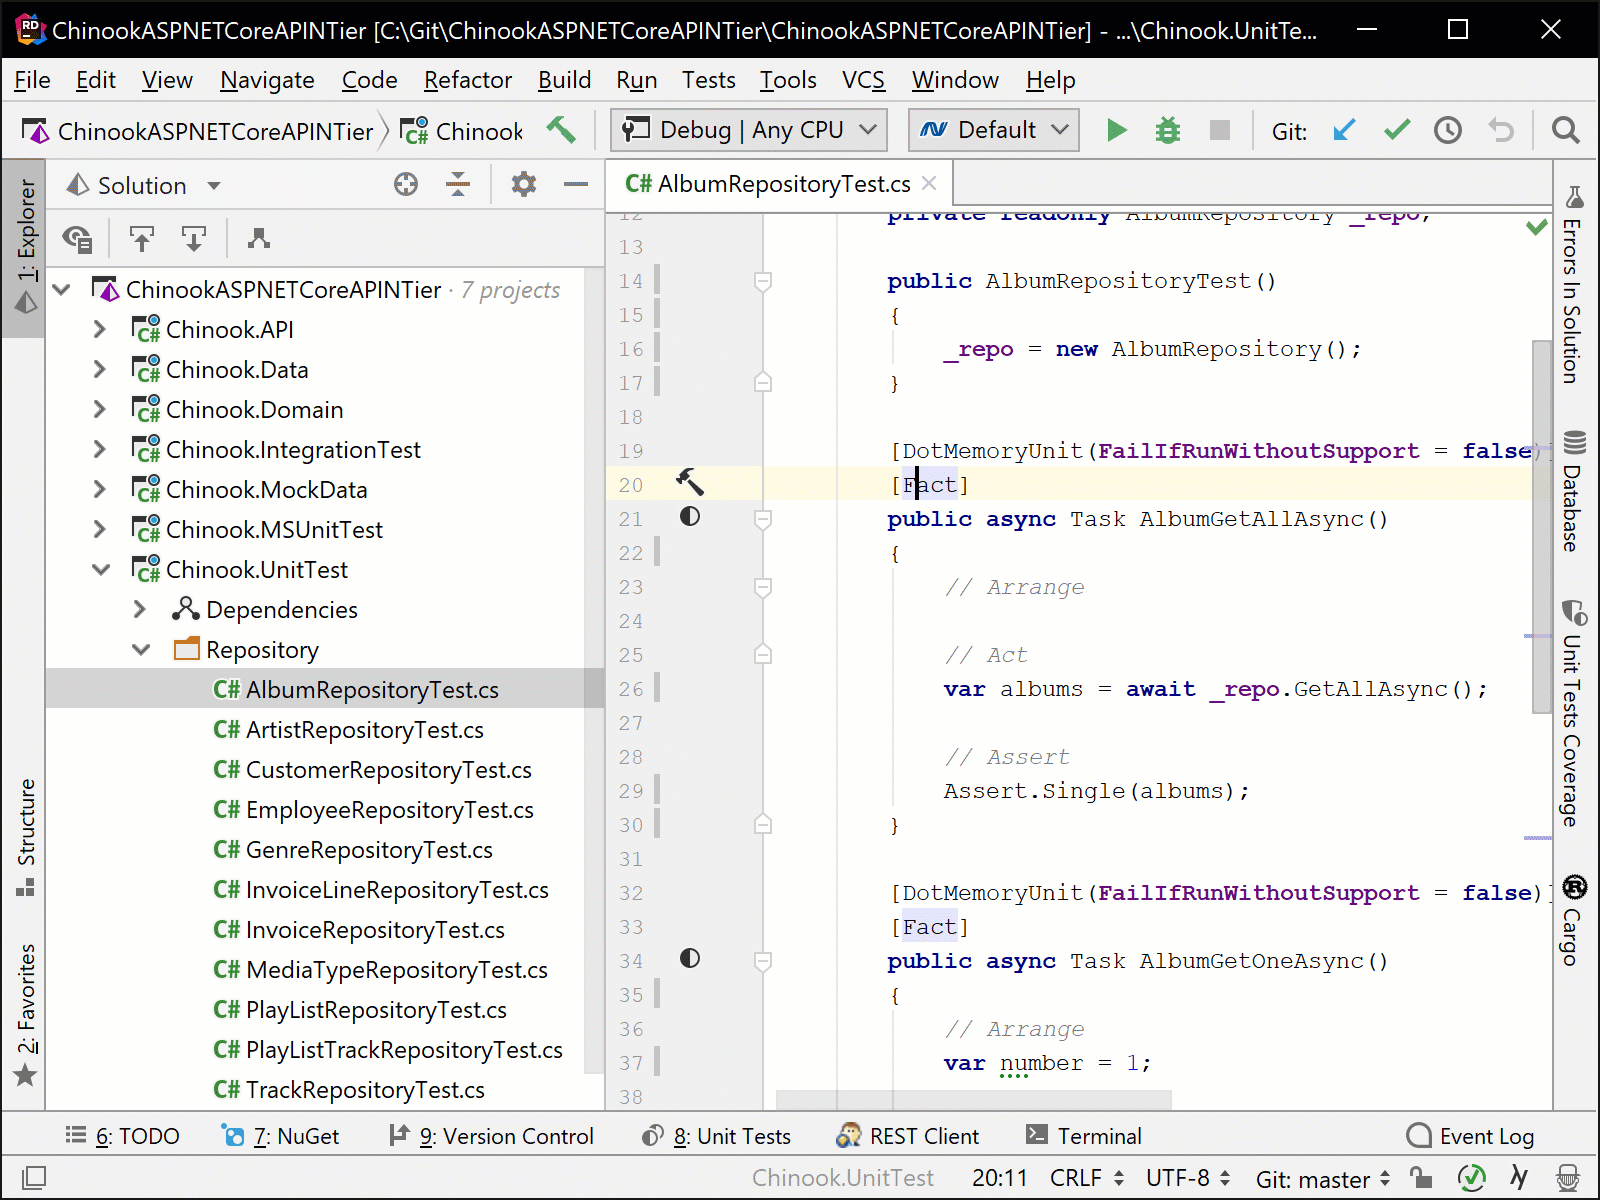 Navigating from a test method to the test in the Init Test Explorer